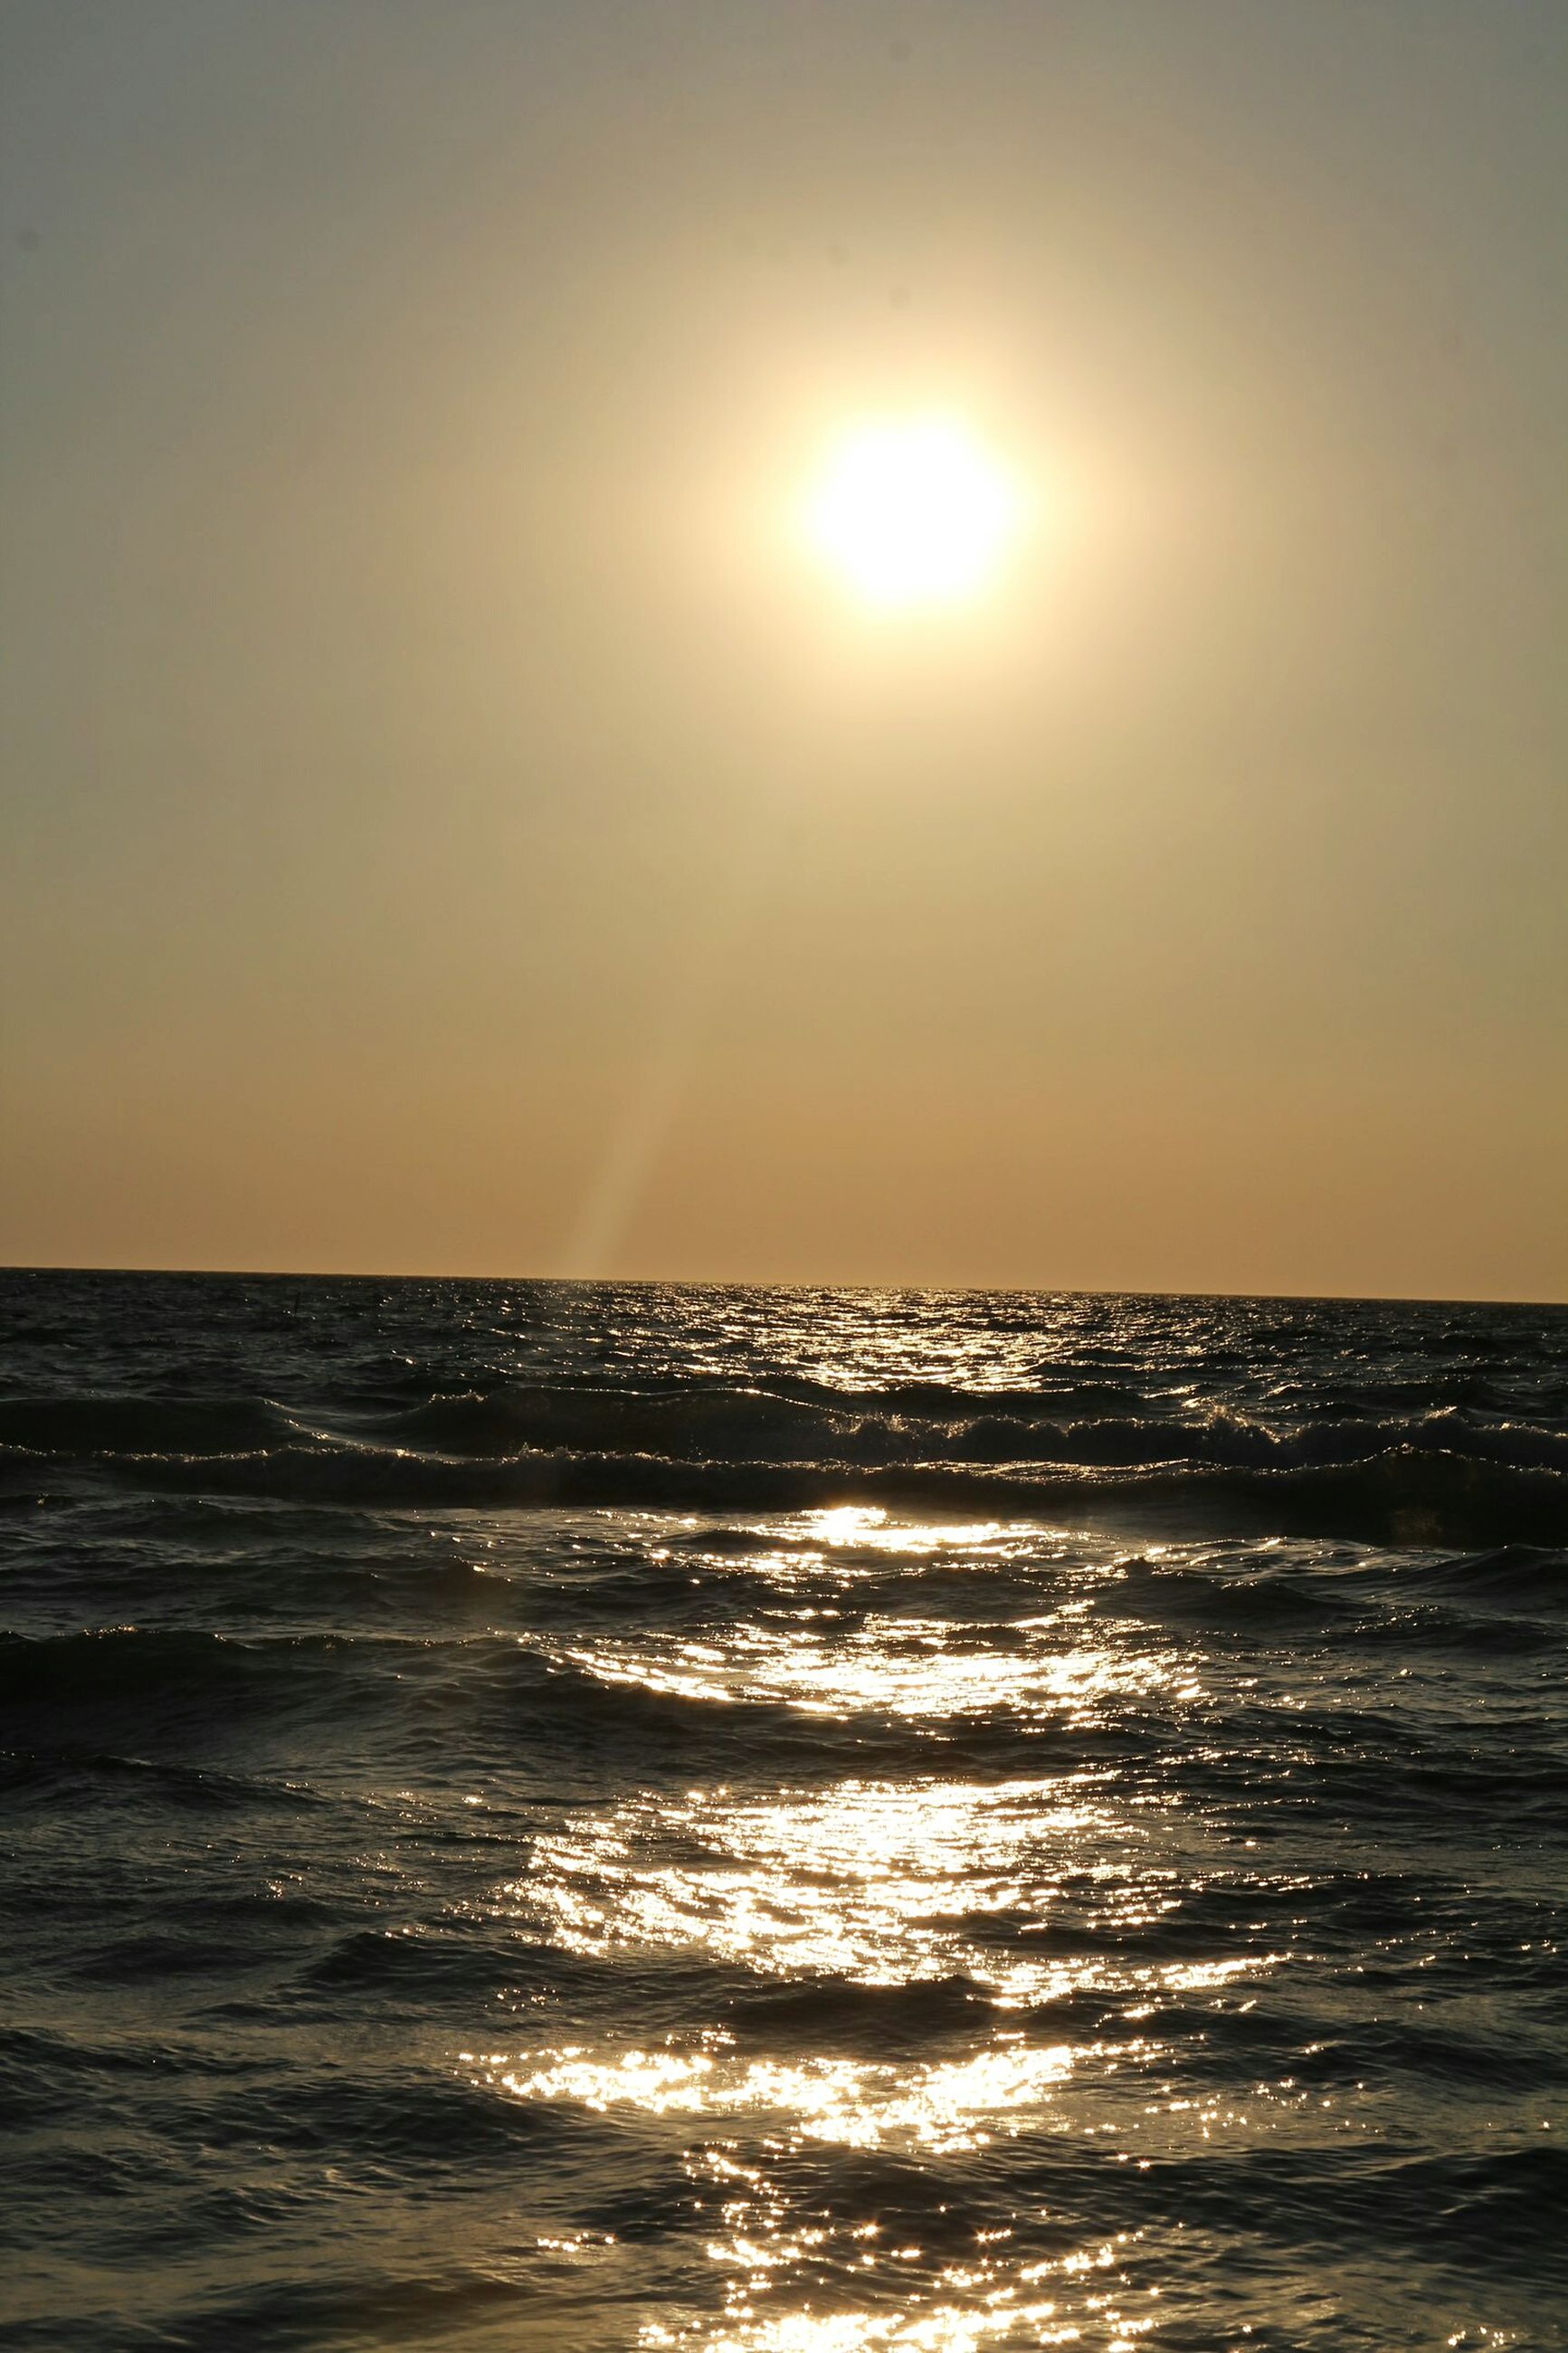 sea, sunset, sun, horizon over water, scenics, beauty in nature, sunlight, nature, tranquility, sky, tranquil scene, water, no people, outdoors, wave, beach, day